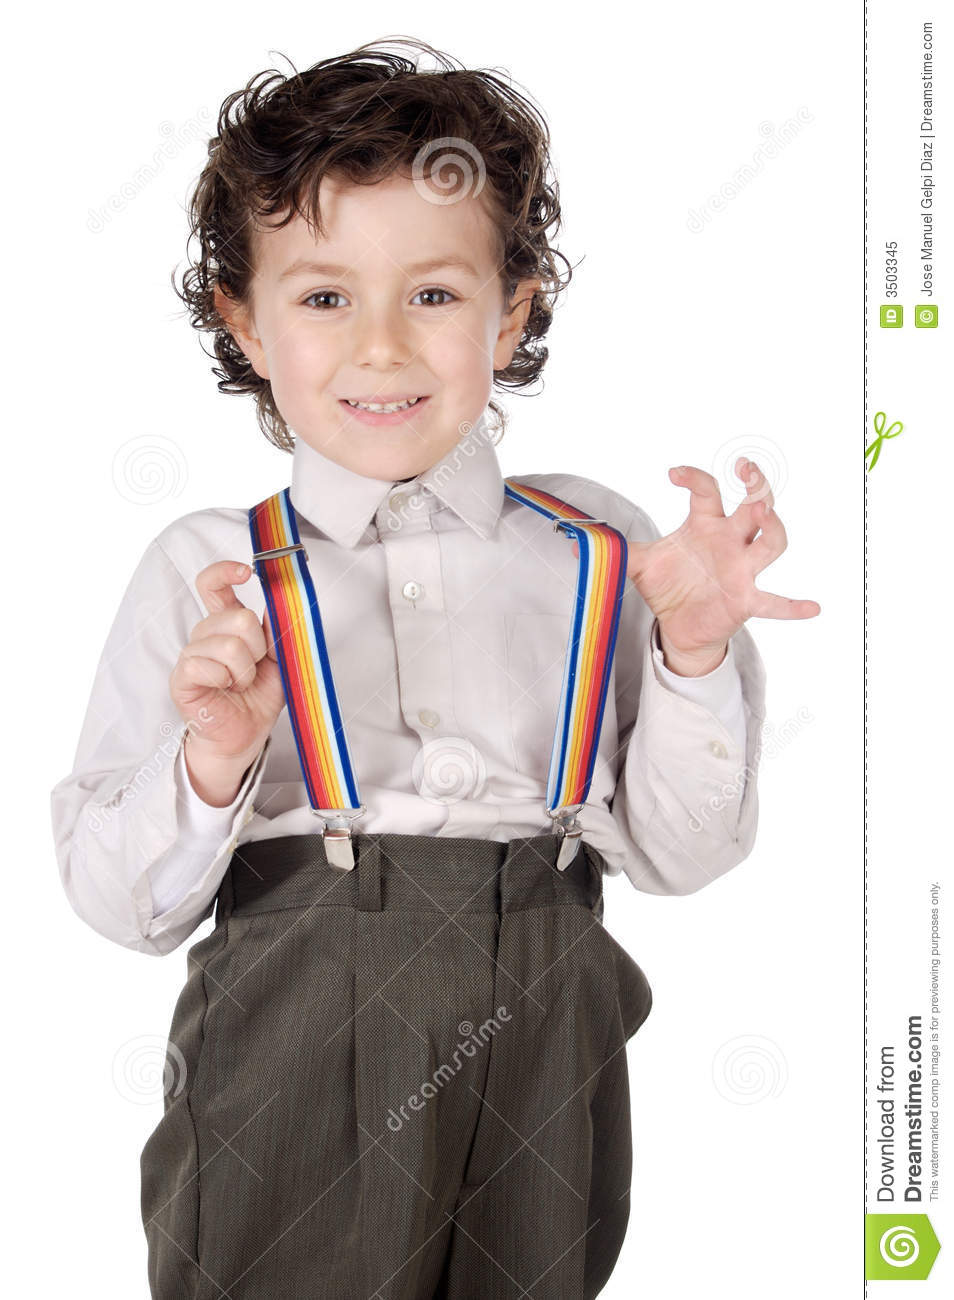 Boy With Suspenders Royalty Free Stock Photo Image 3503345